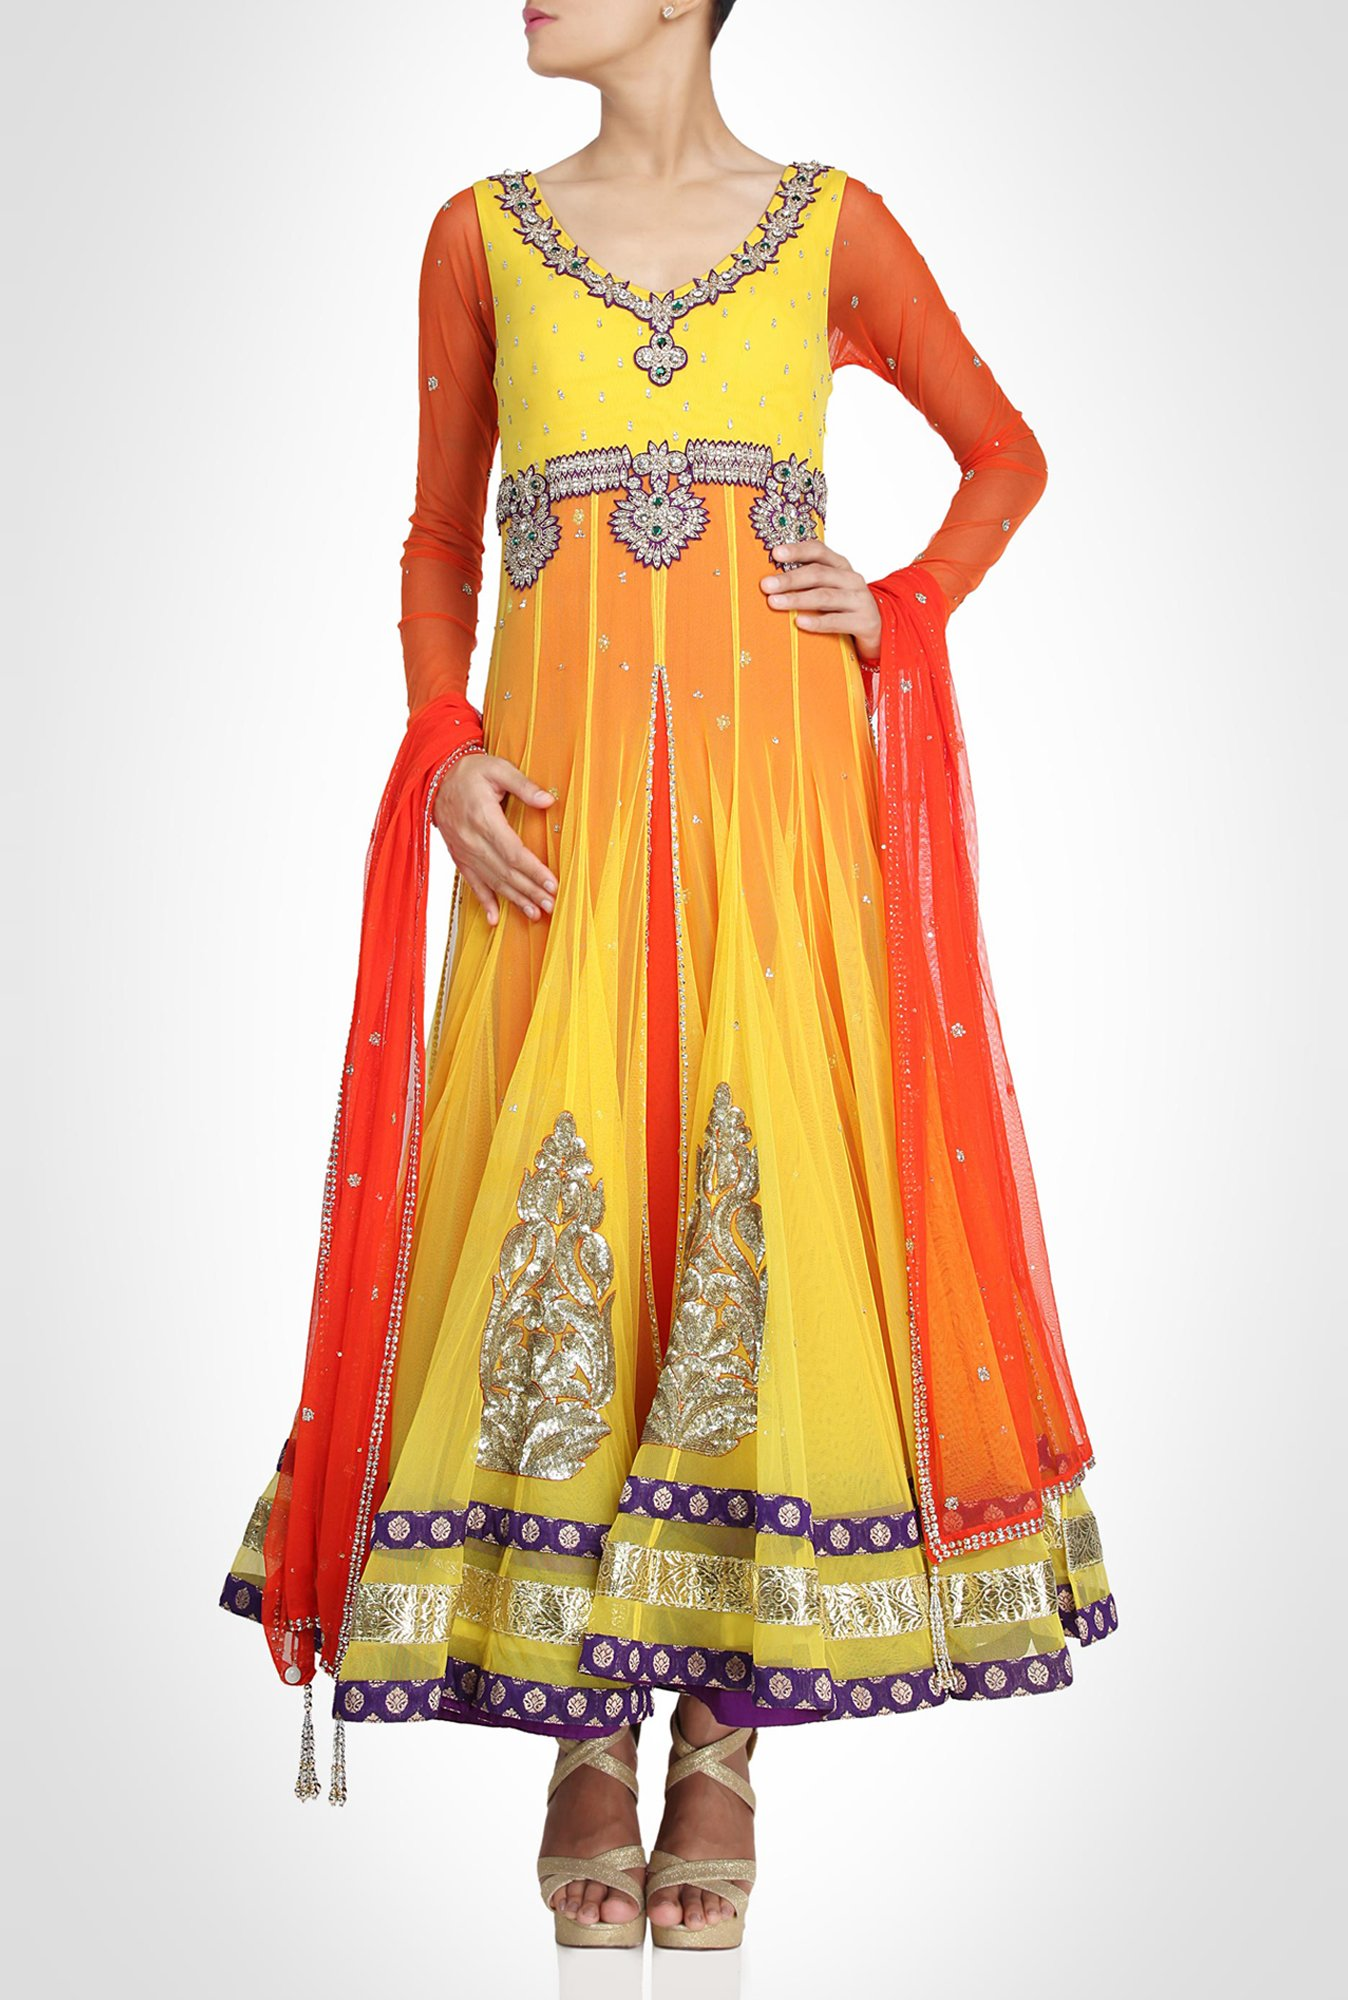 Arpan Vohra Designer Wear Vibrant Yellow Suit Set by Kimaya